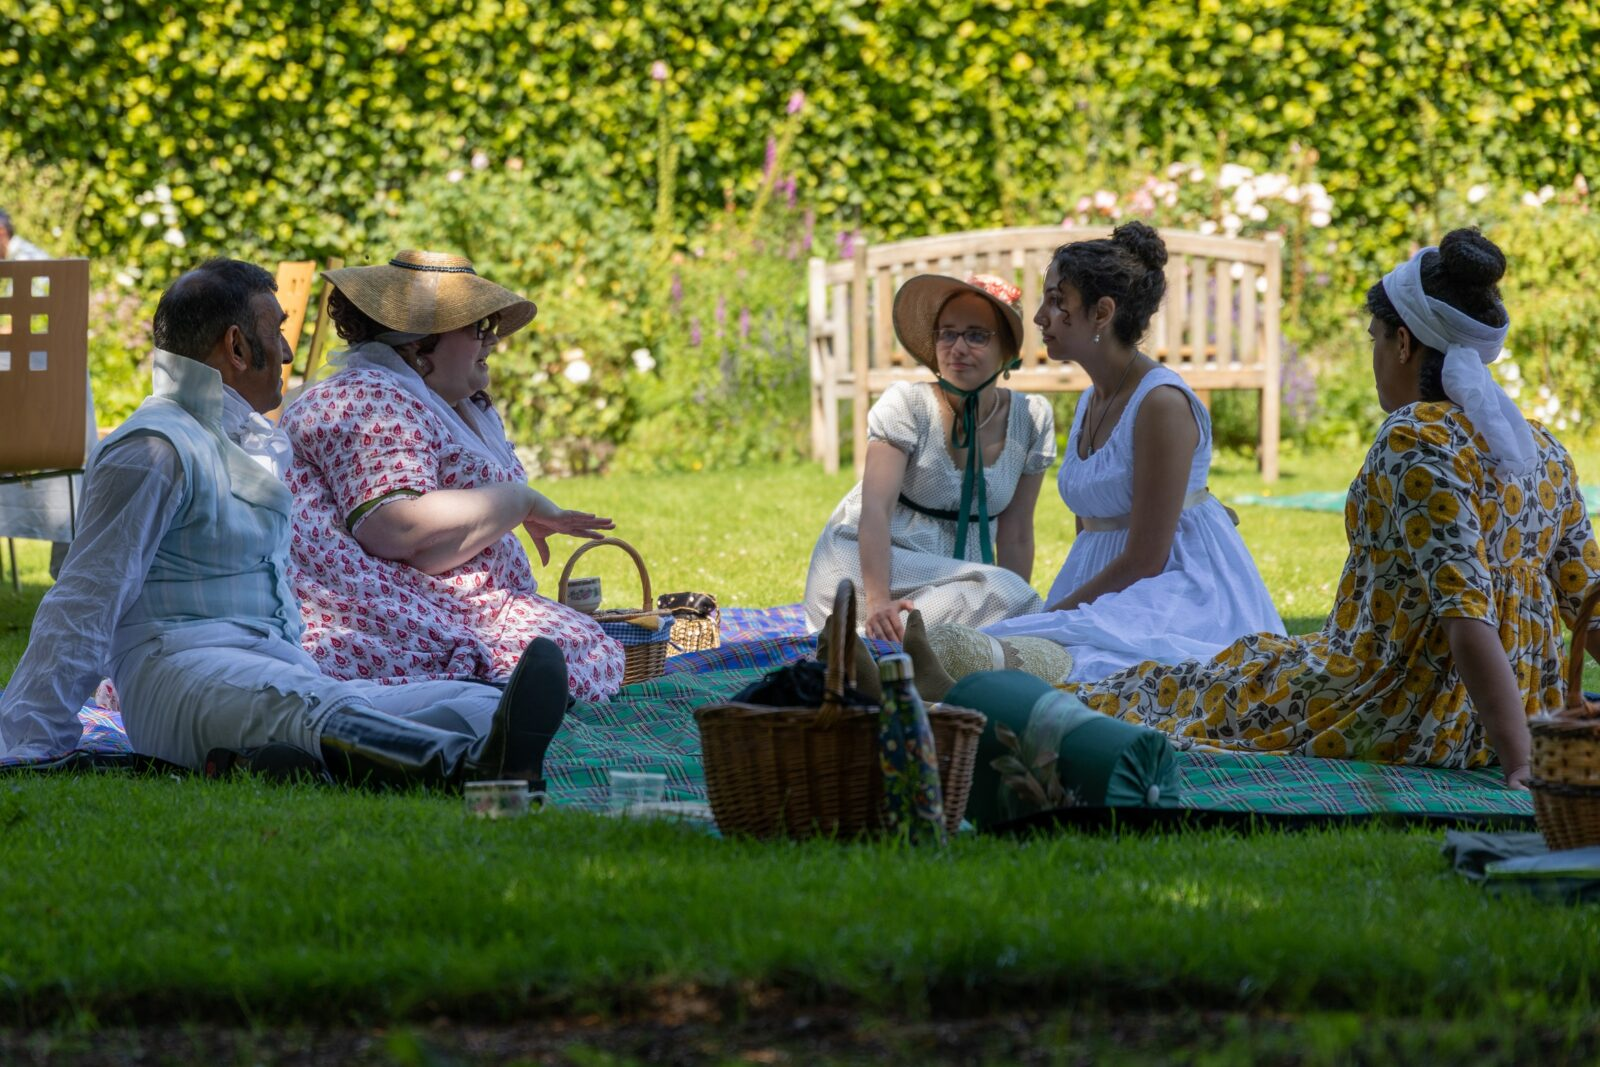 A group of men and women in Regency dress enjoying a picnic in the garden at Jane Austen's House